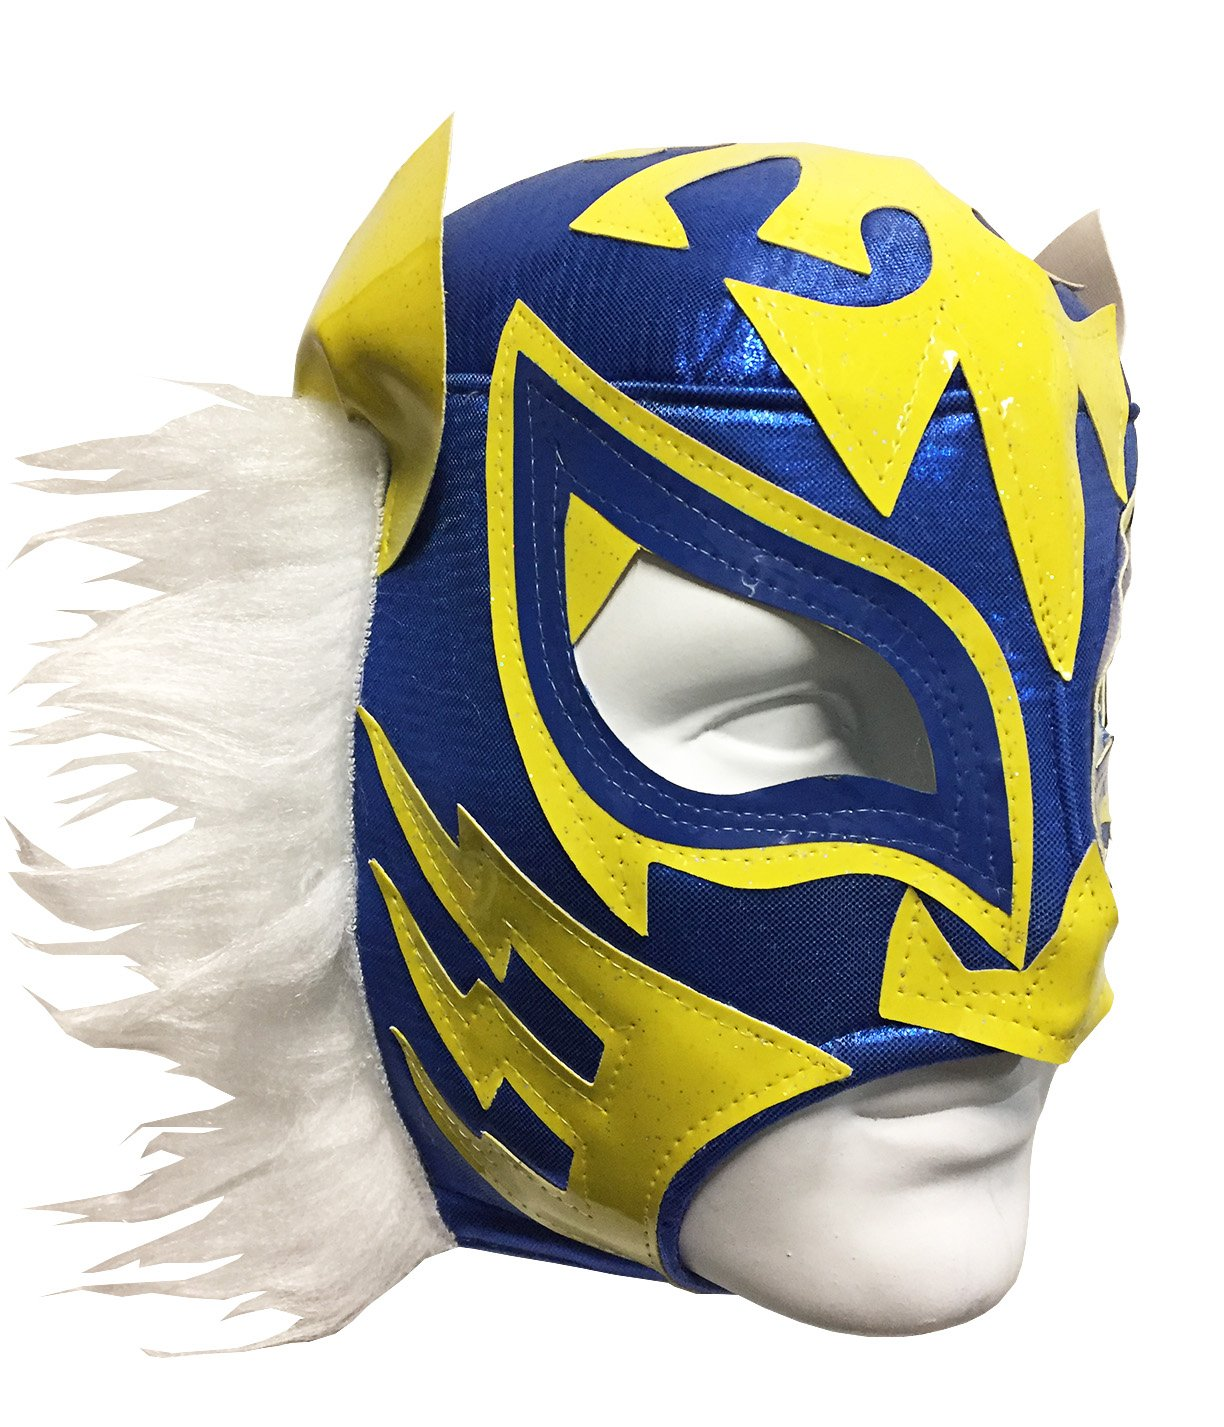 WHITE TIGER Adult Lucha Libre Wrestling Mask (pro-fit) Costume Wear - Blue/Yellow by Mask Maniac